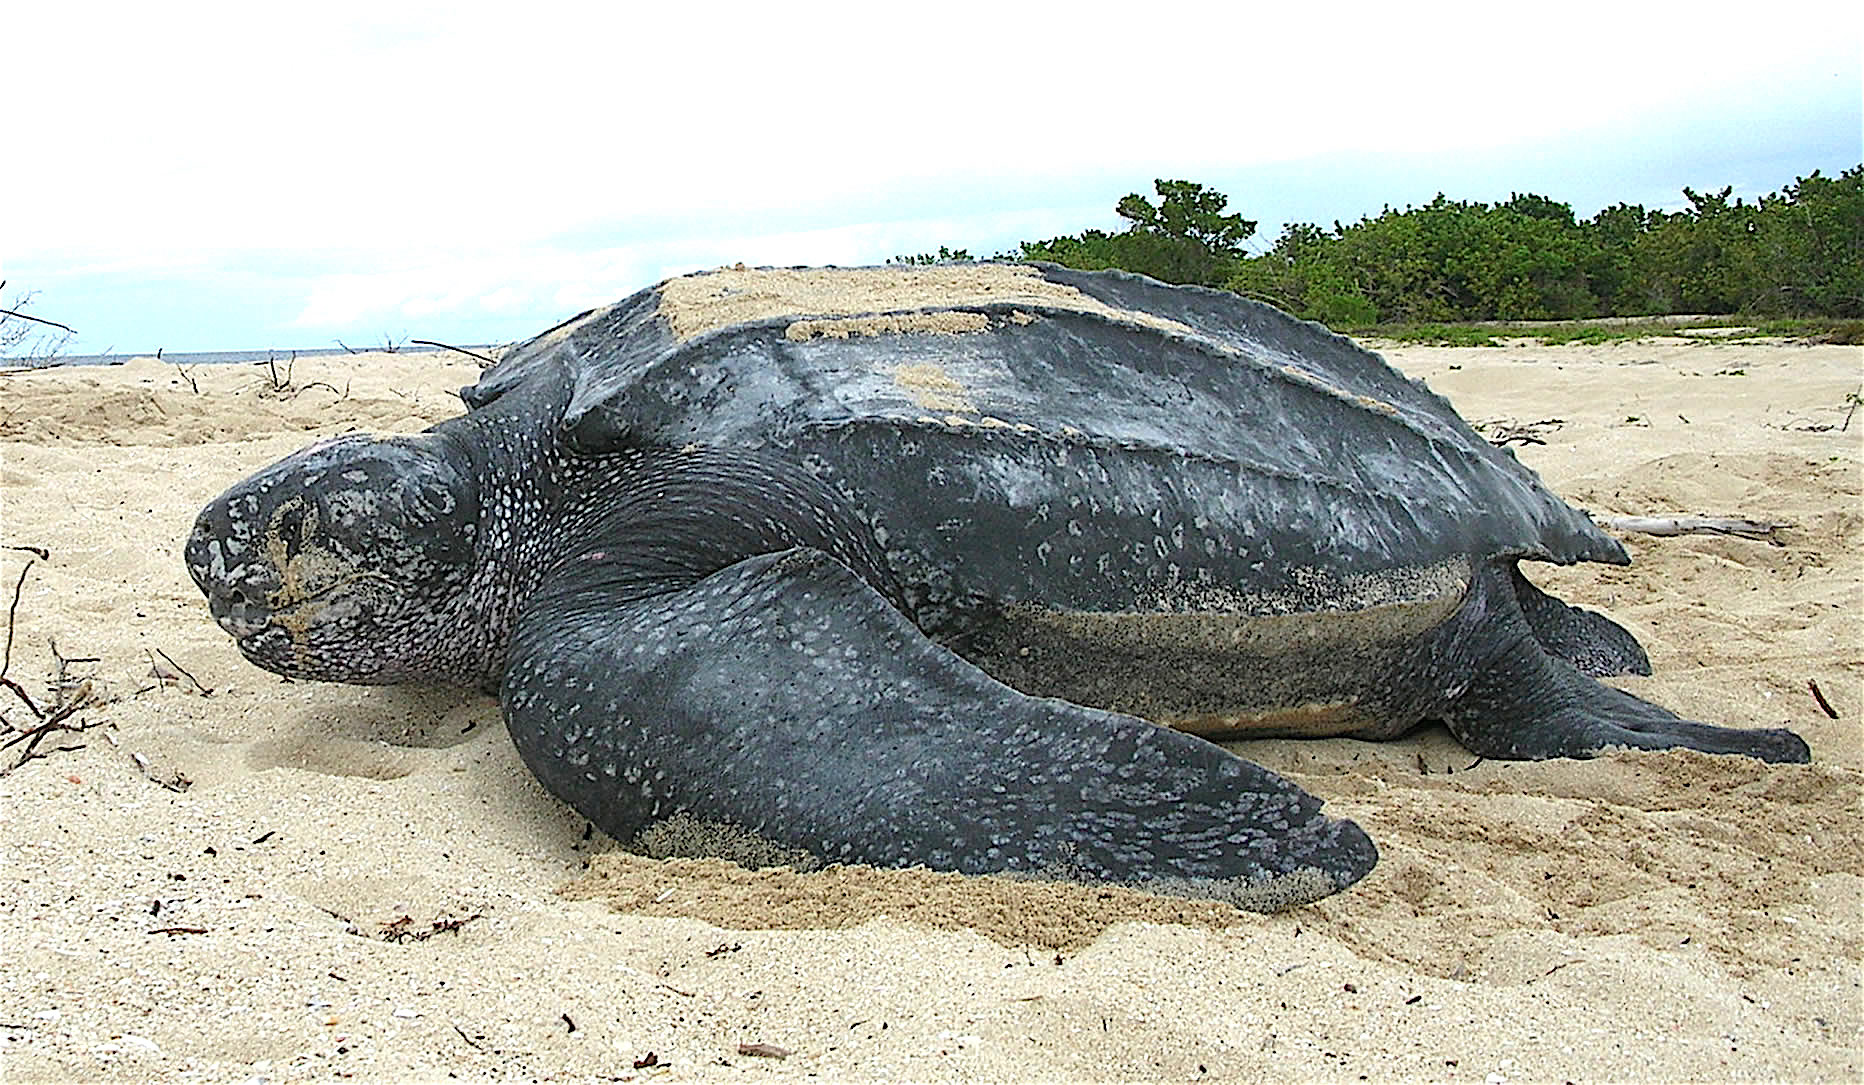 Leatherback Sea Turtle, Credit: Wikimedia Commons